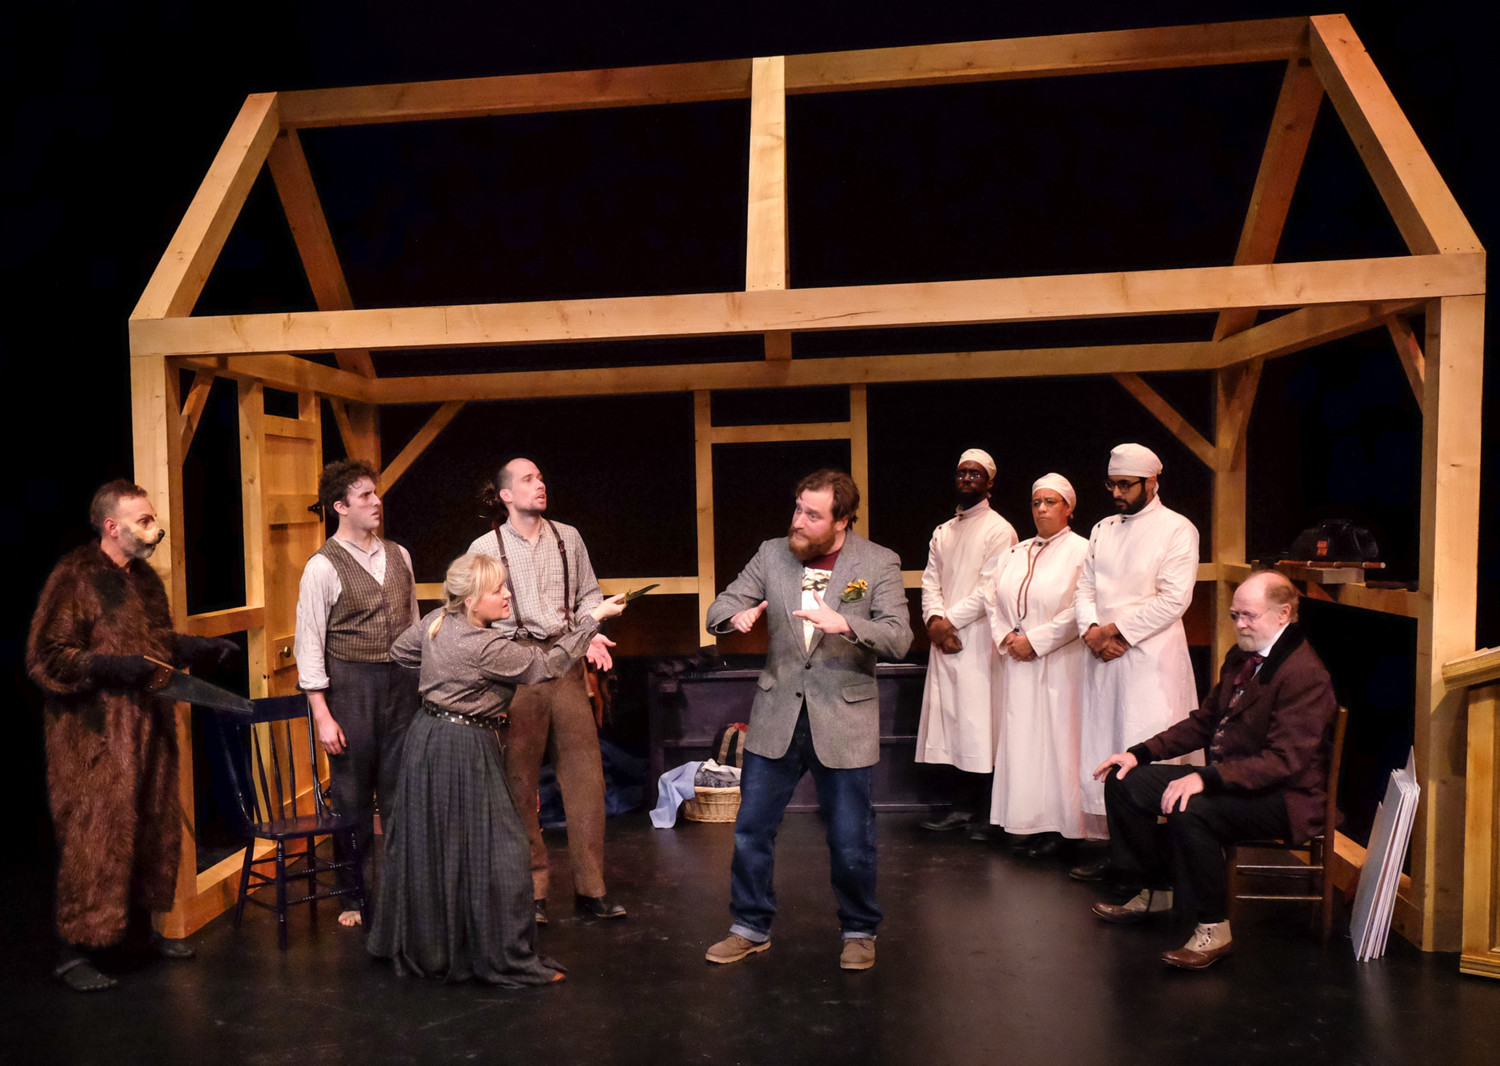 BWW Review: Smart, Funny PlayMakers' Premiere of 'Bewilderness' is a Mind Trip into the Psyche of Henry David Thoreau (and Zack Fine)